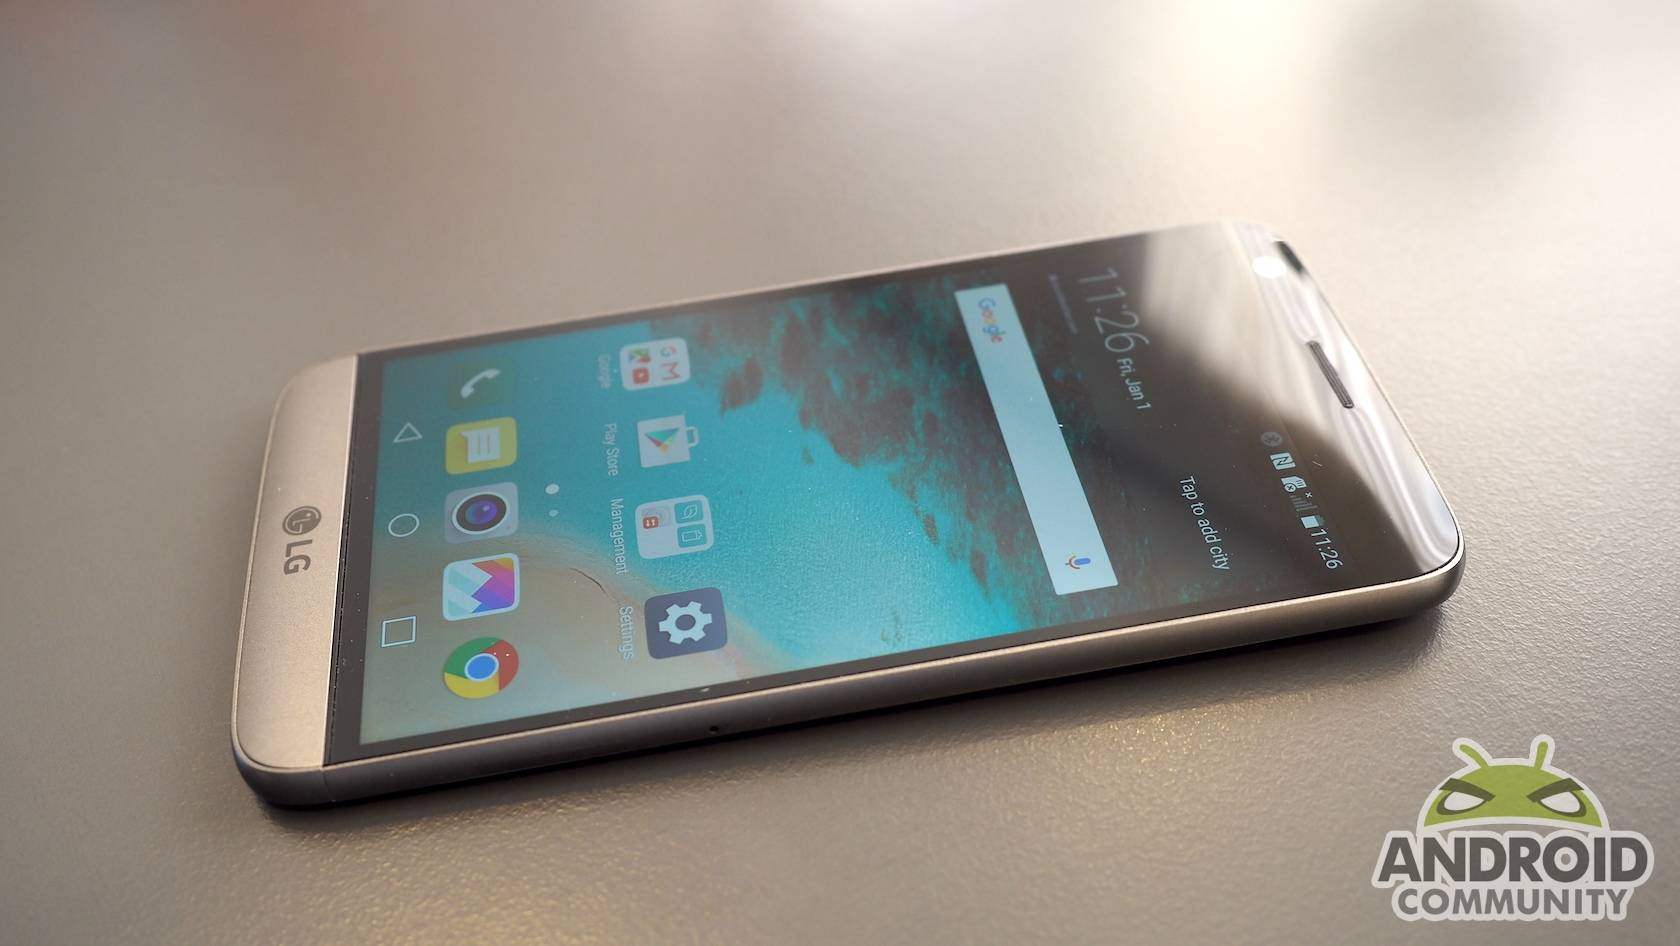 LG G5 delivers a heap of interesting features, new